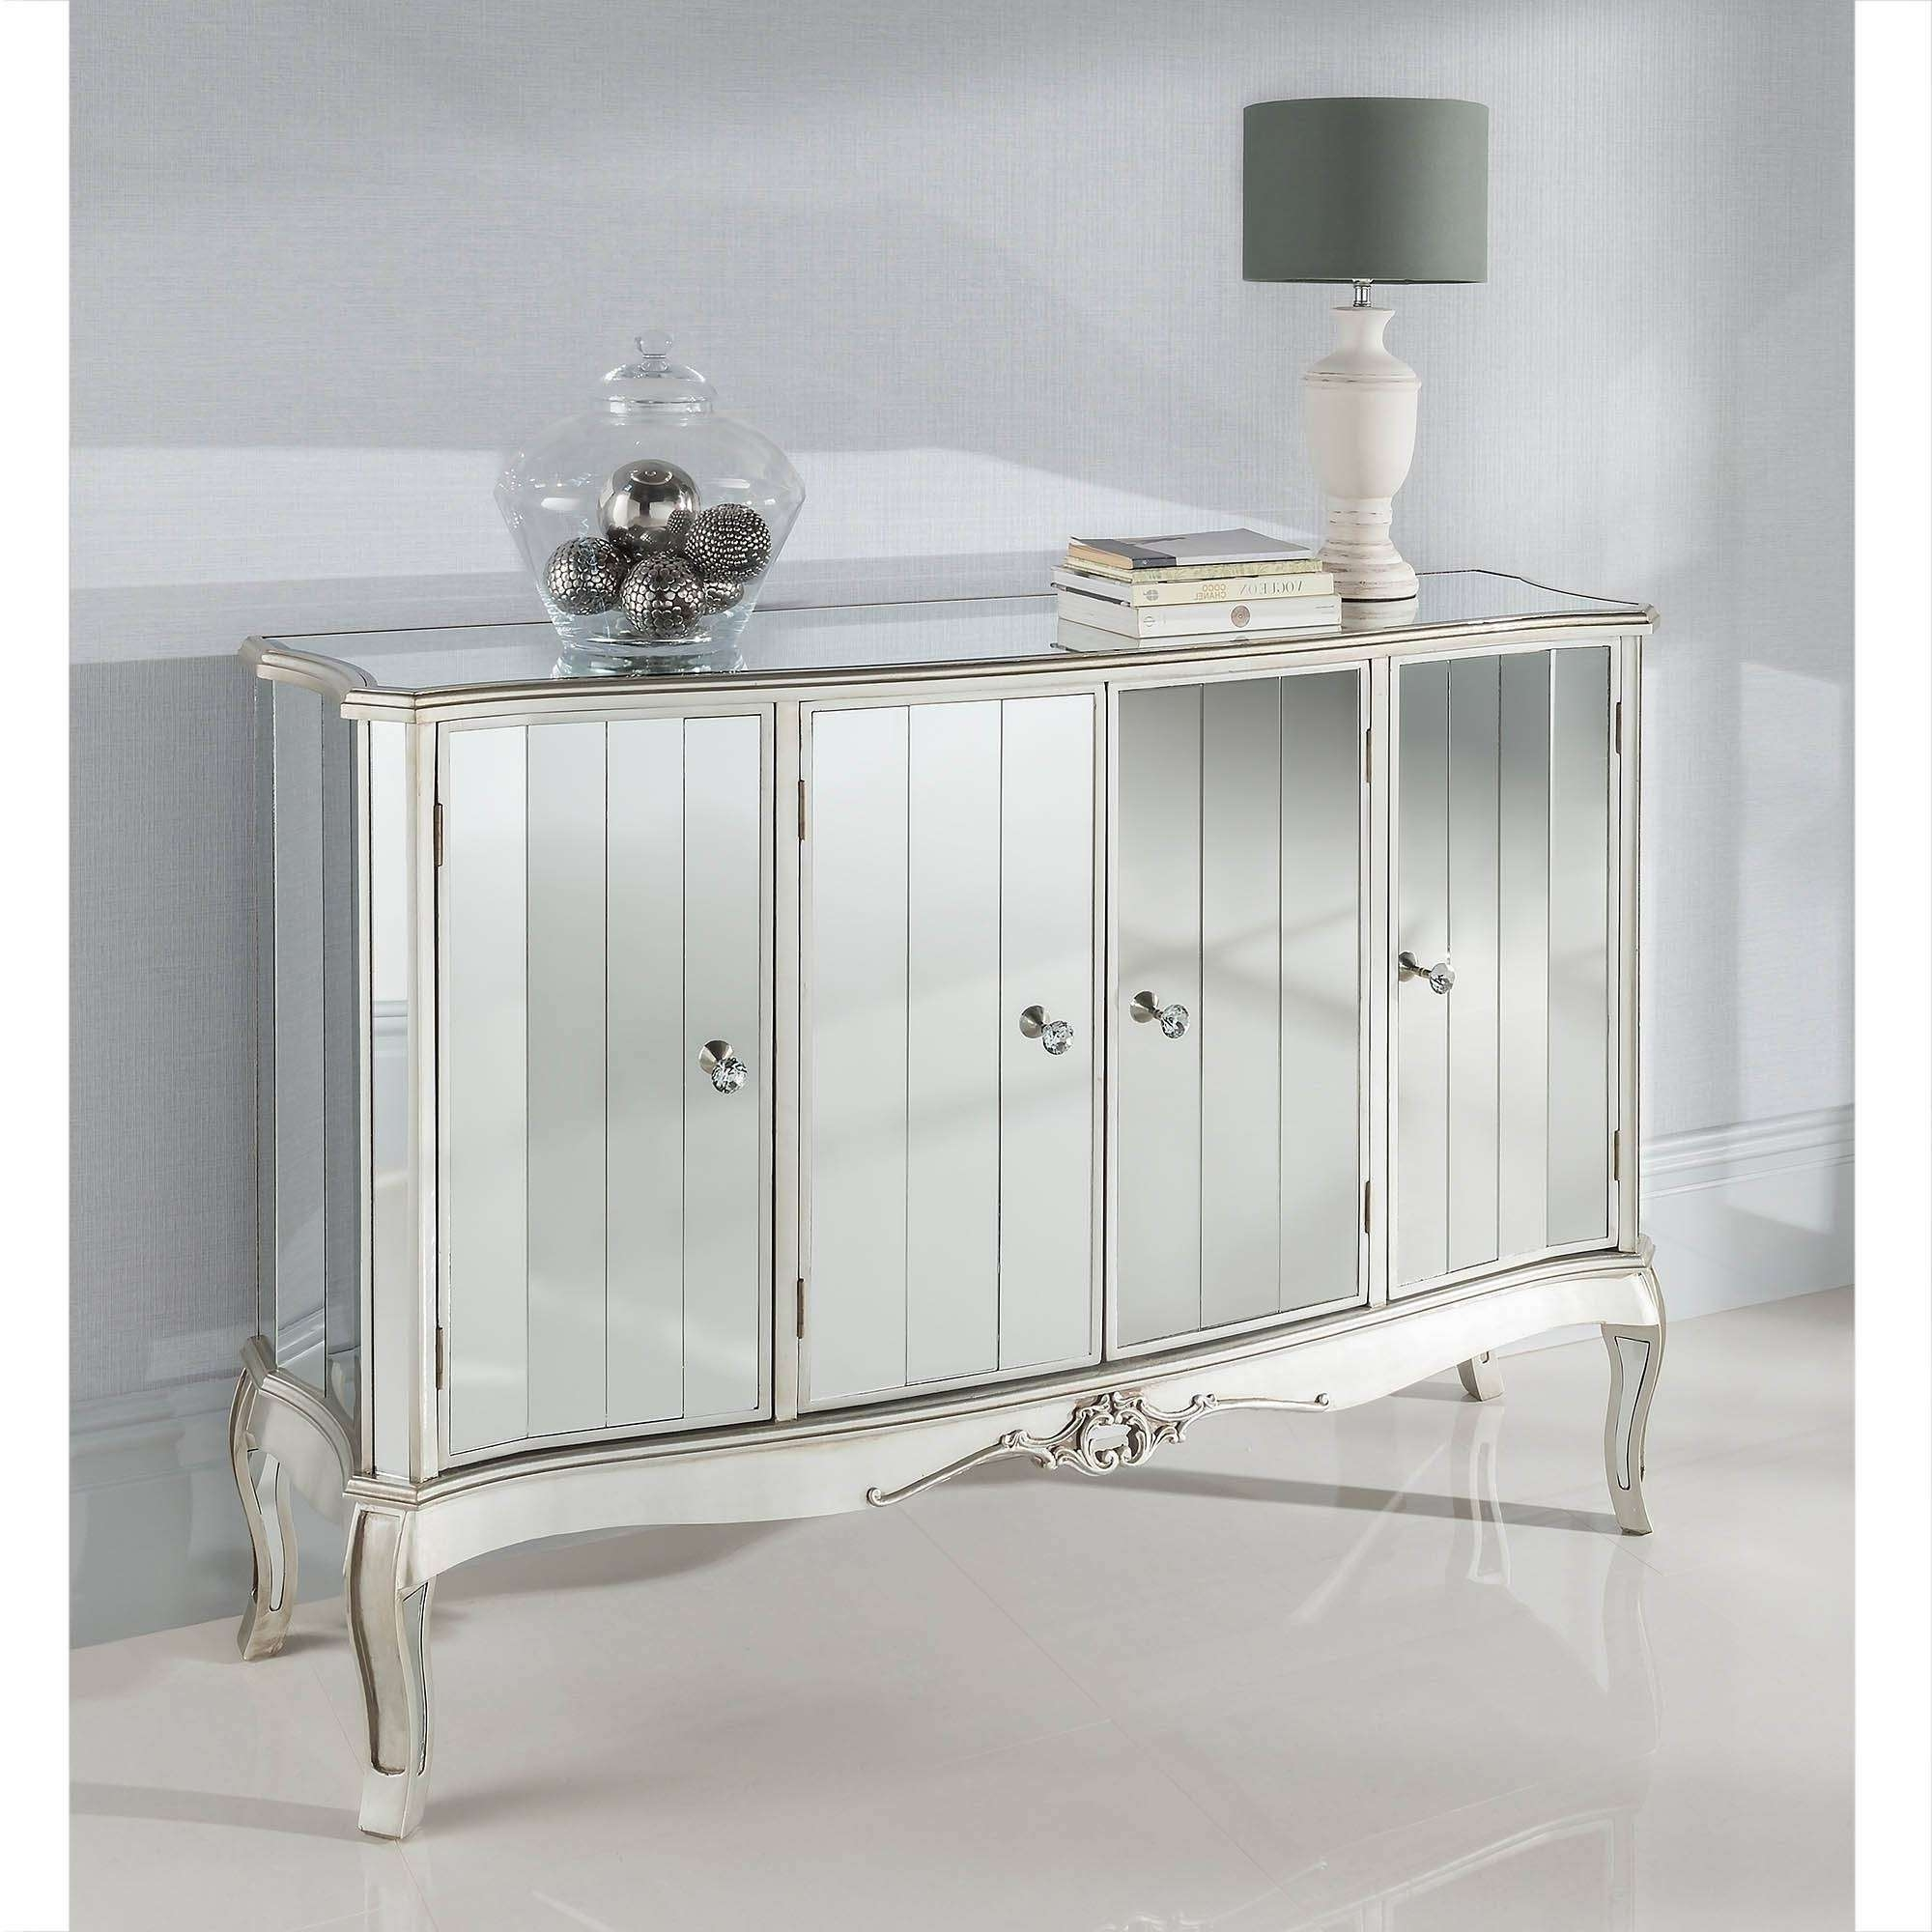 Mirrored Credenza Furniture Decorating — New Home Design Inside Small Mirrored Sideboards (View 5 of 20)